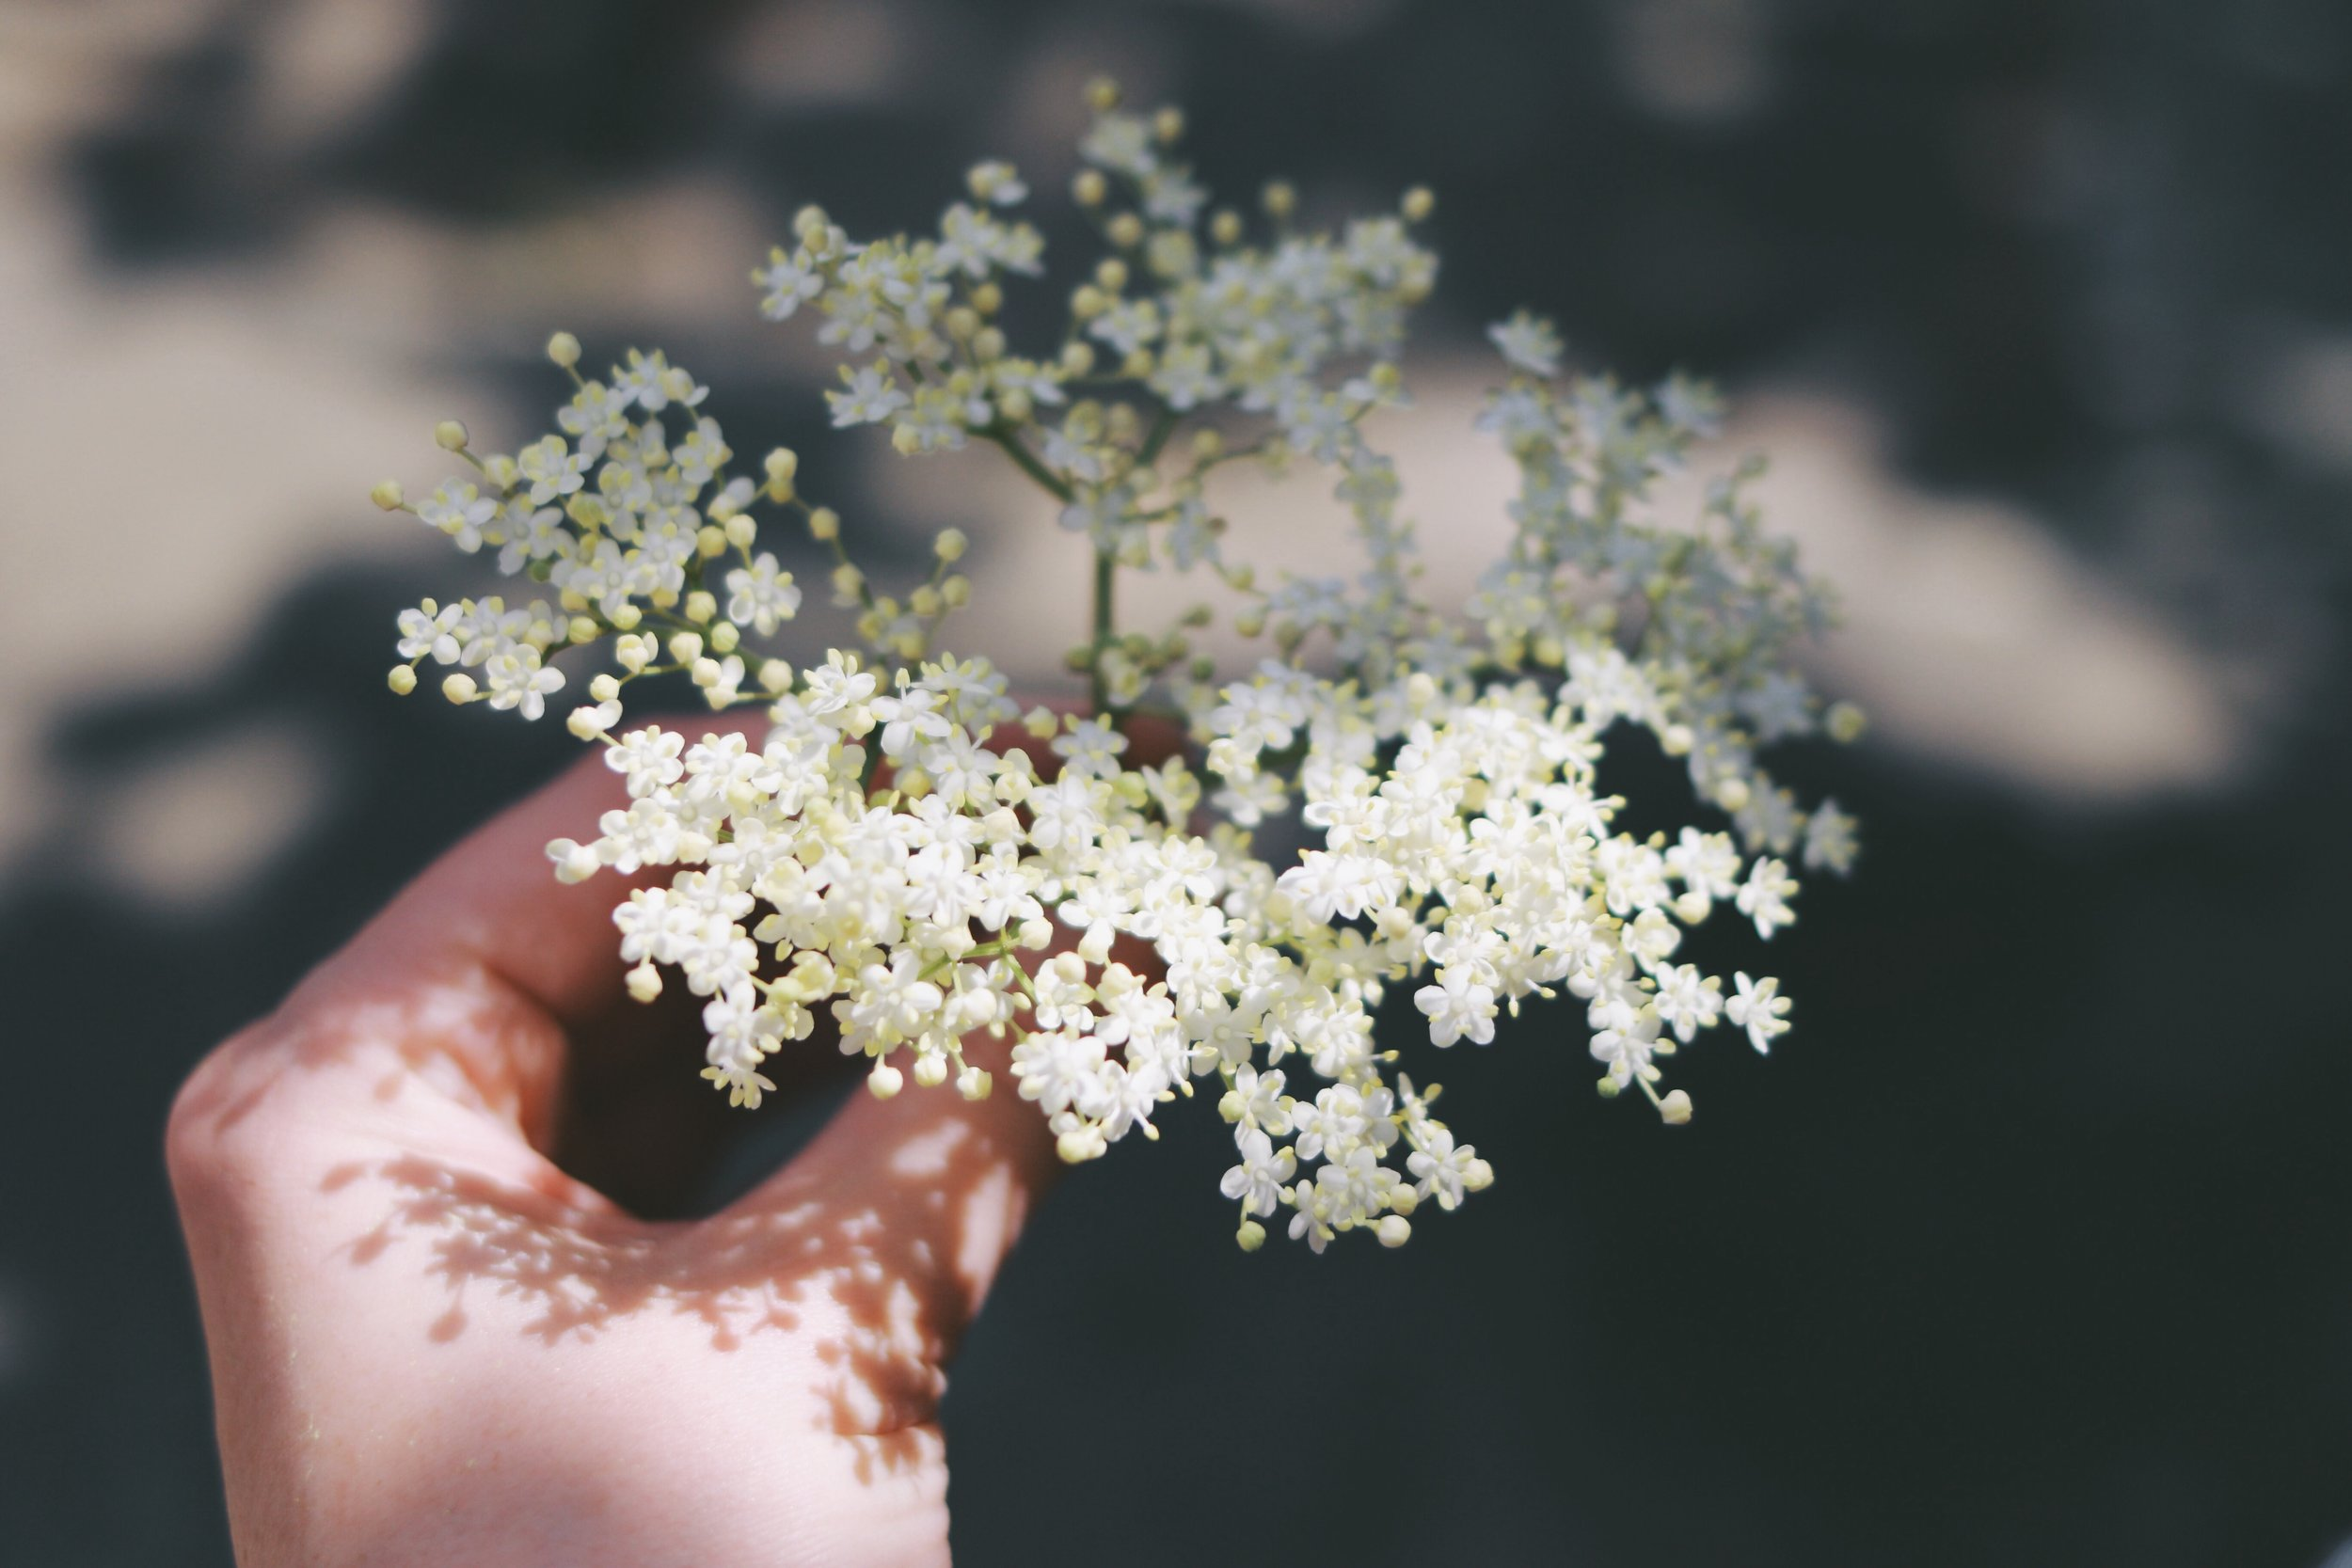 Elderflowers have a delicately floral flavour which pairs beautifully with lemon.